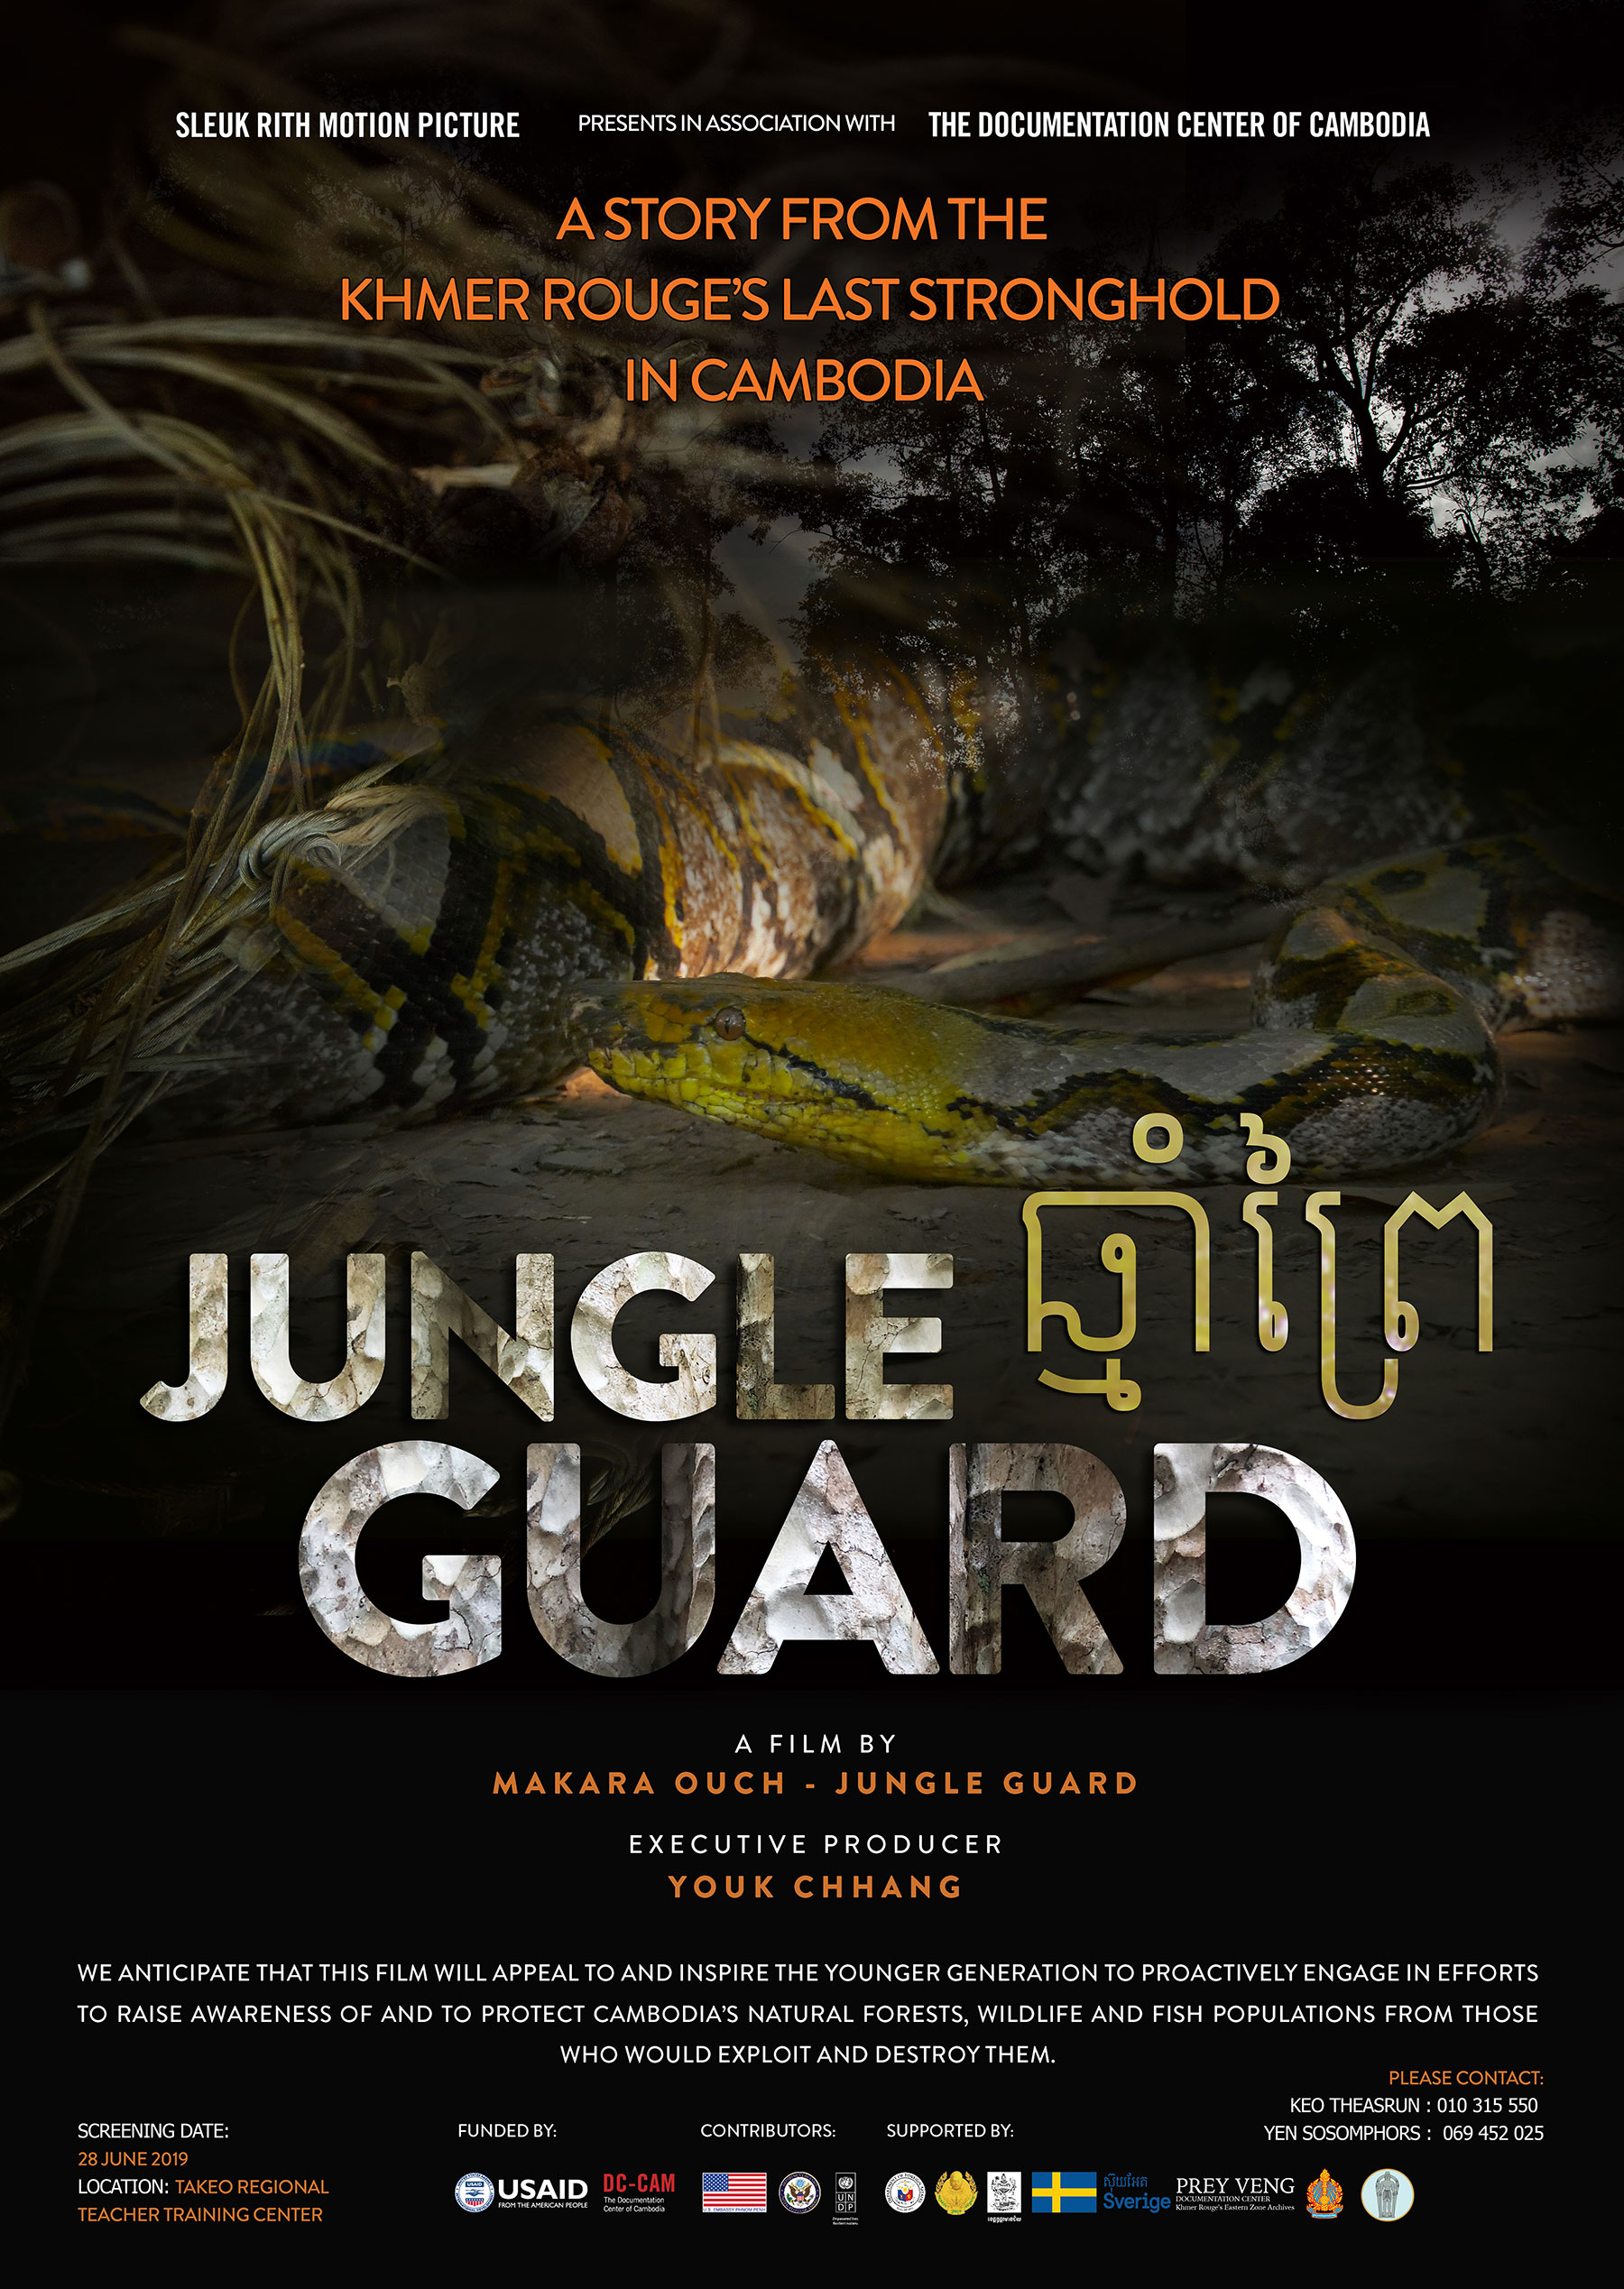 FILM SCREENING: JUNGLE GUARD IN TAKEO  REGIONAL TEACHER TRAINING CENTER, (28 June 2019)